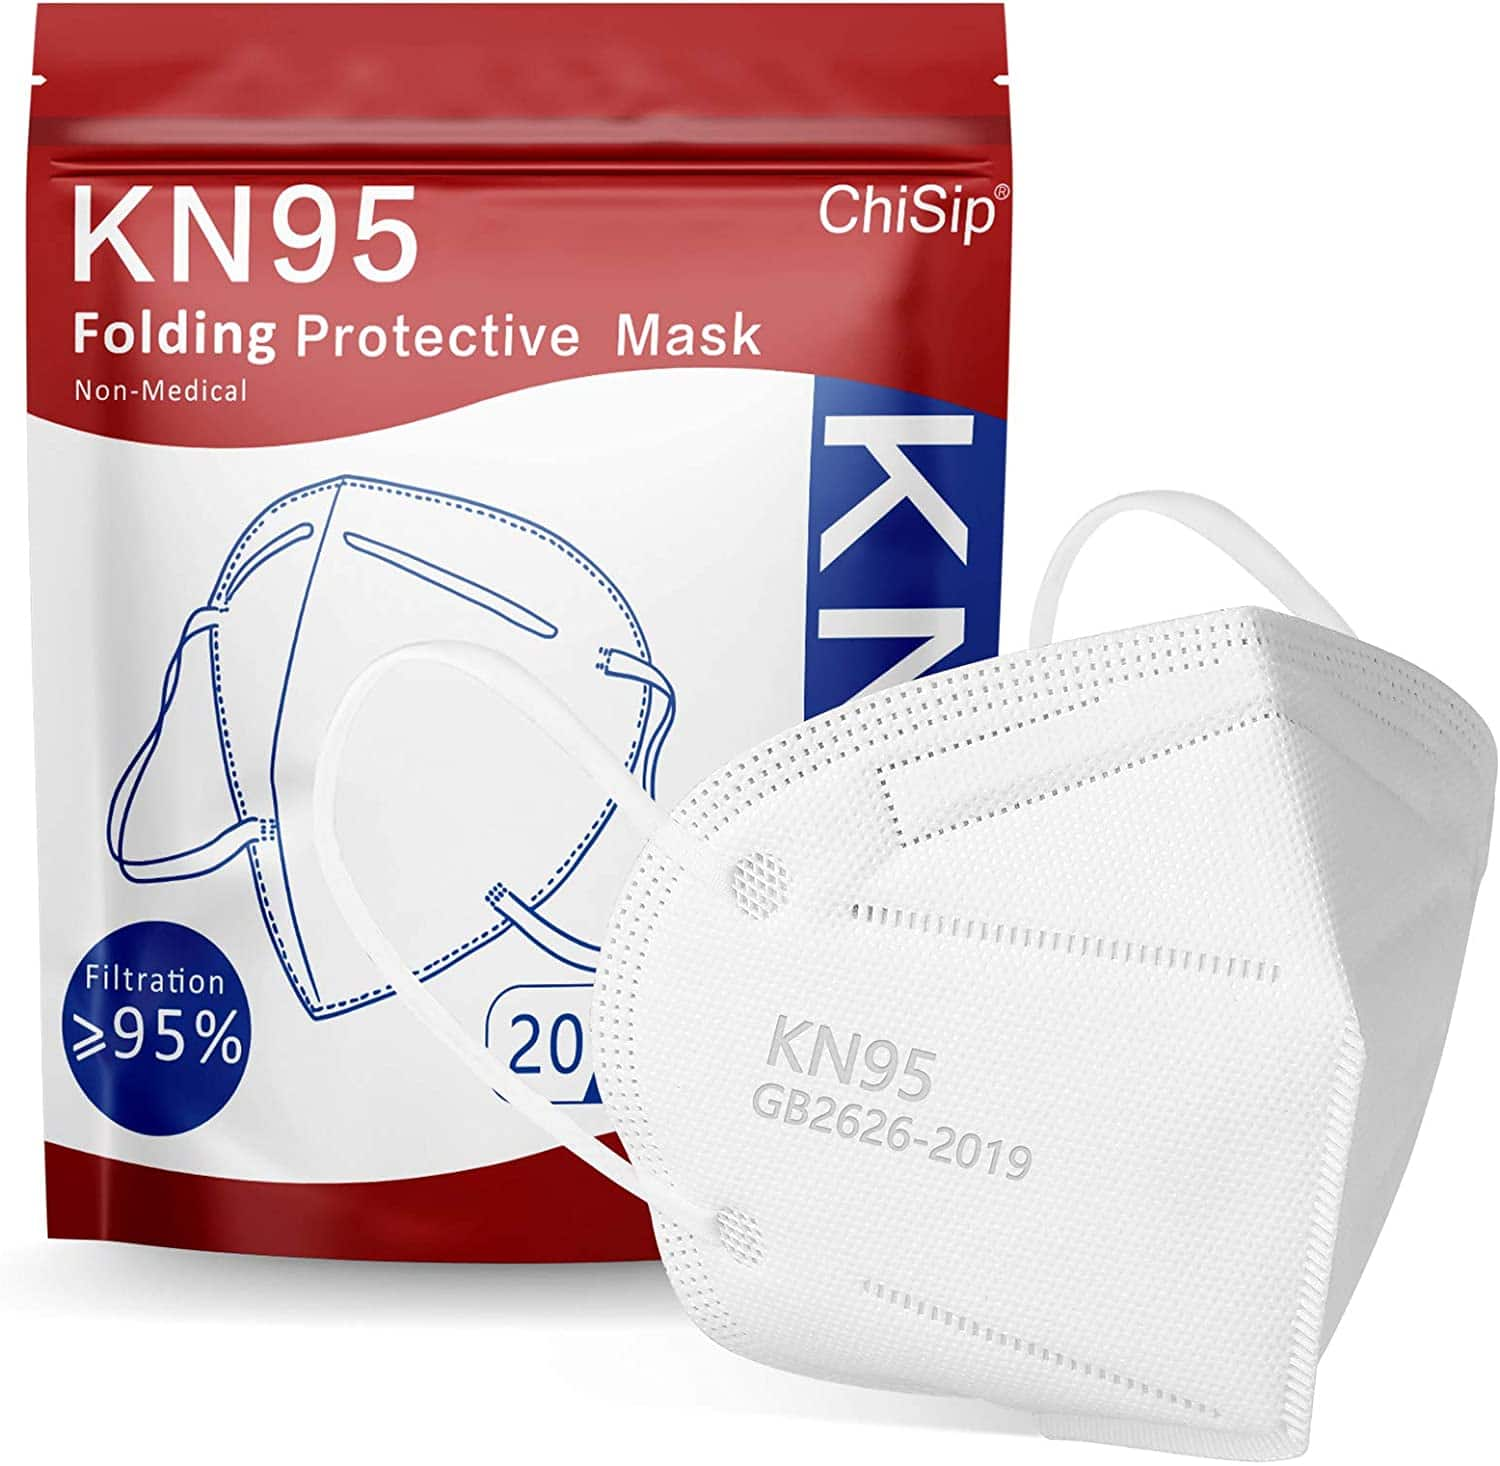 20-Pack Chisip KN95 Face Masks Filter Efficiency ≥95% White Face Mask for Men & Women $7.55 + Free Shipping